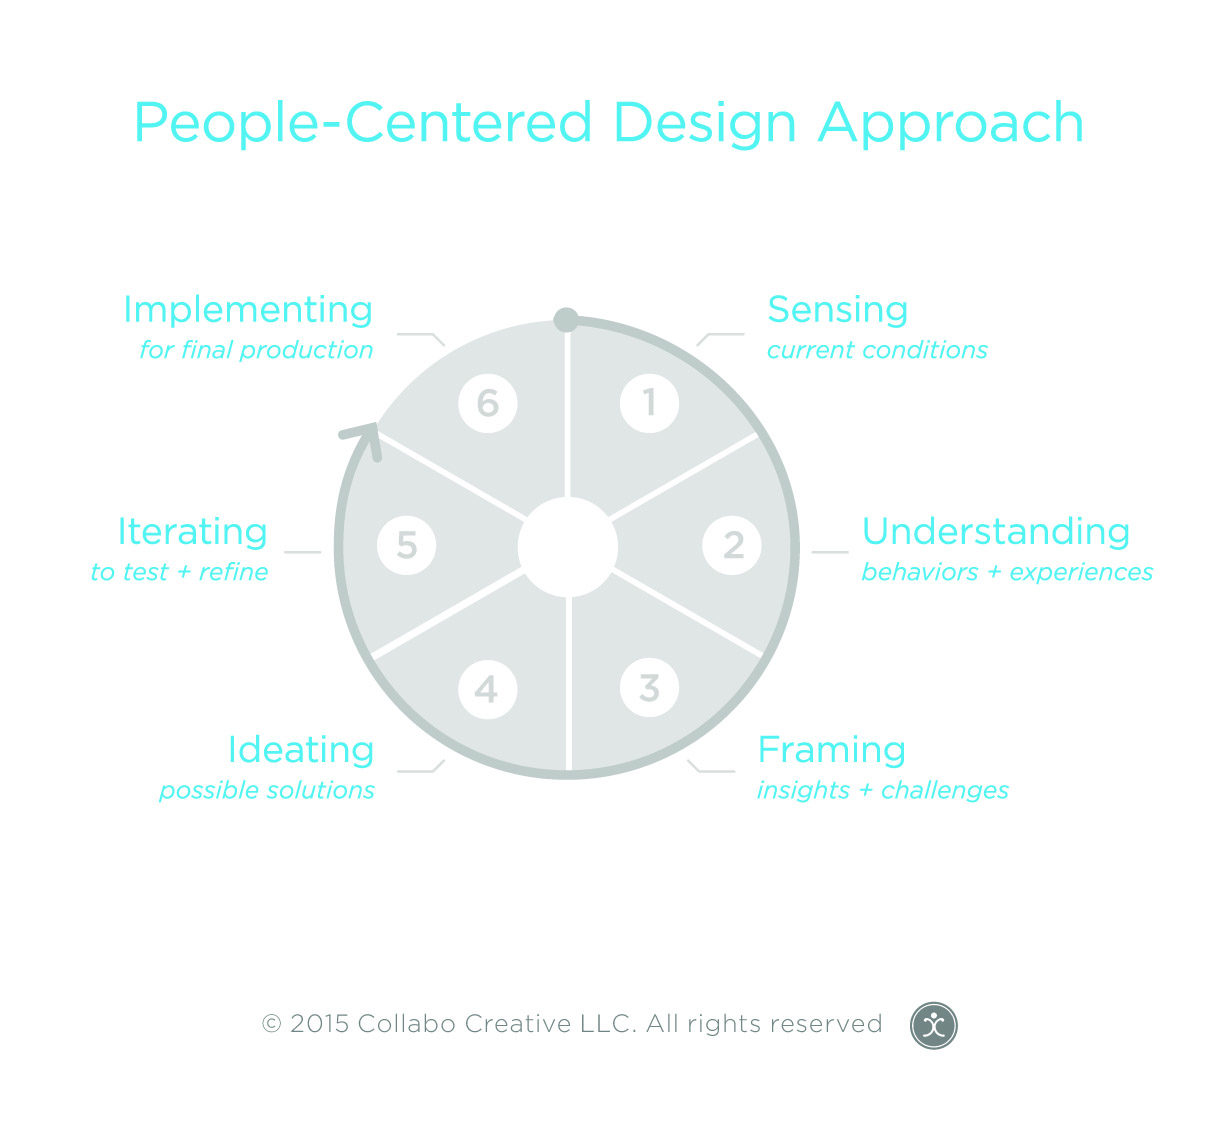 Figure 1.: This diagram depicts Collabo Creative's People-Centered Design Process. (Collabo Creative is a strategy and service design consultancy based in Indianapolis, Indiana, USA founded and operated by the authors that also fosters workshops that immerse participants from a variety of disciplines in innovative activities.)